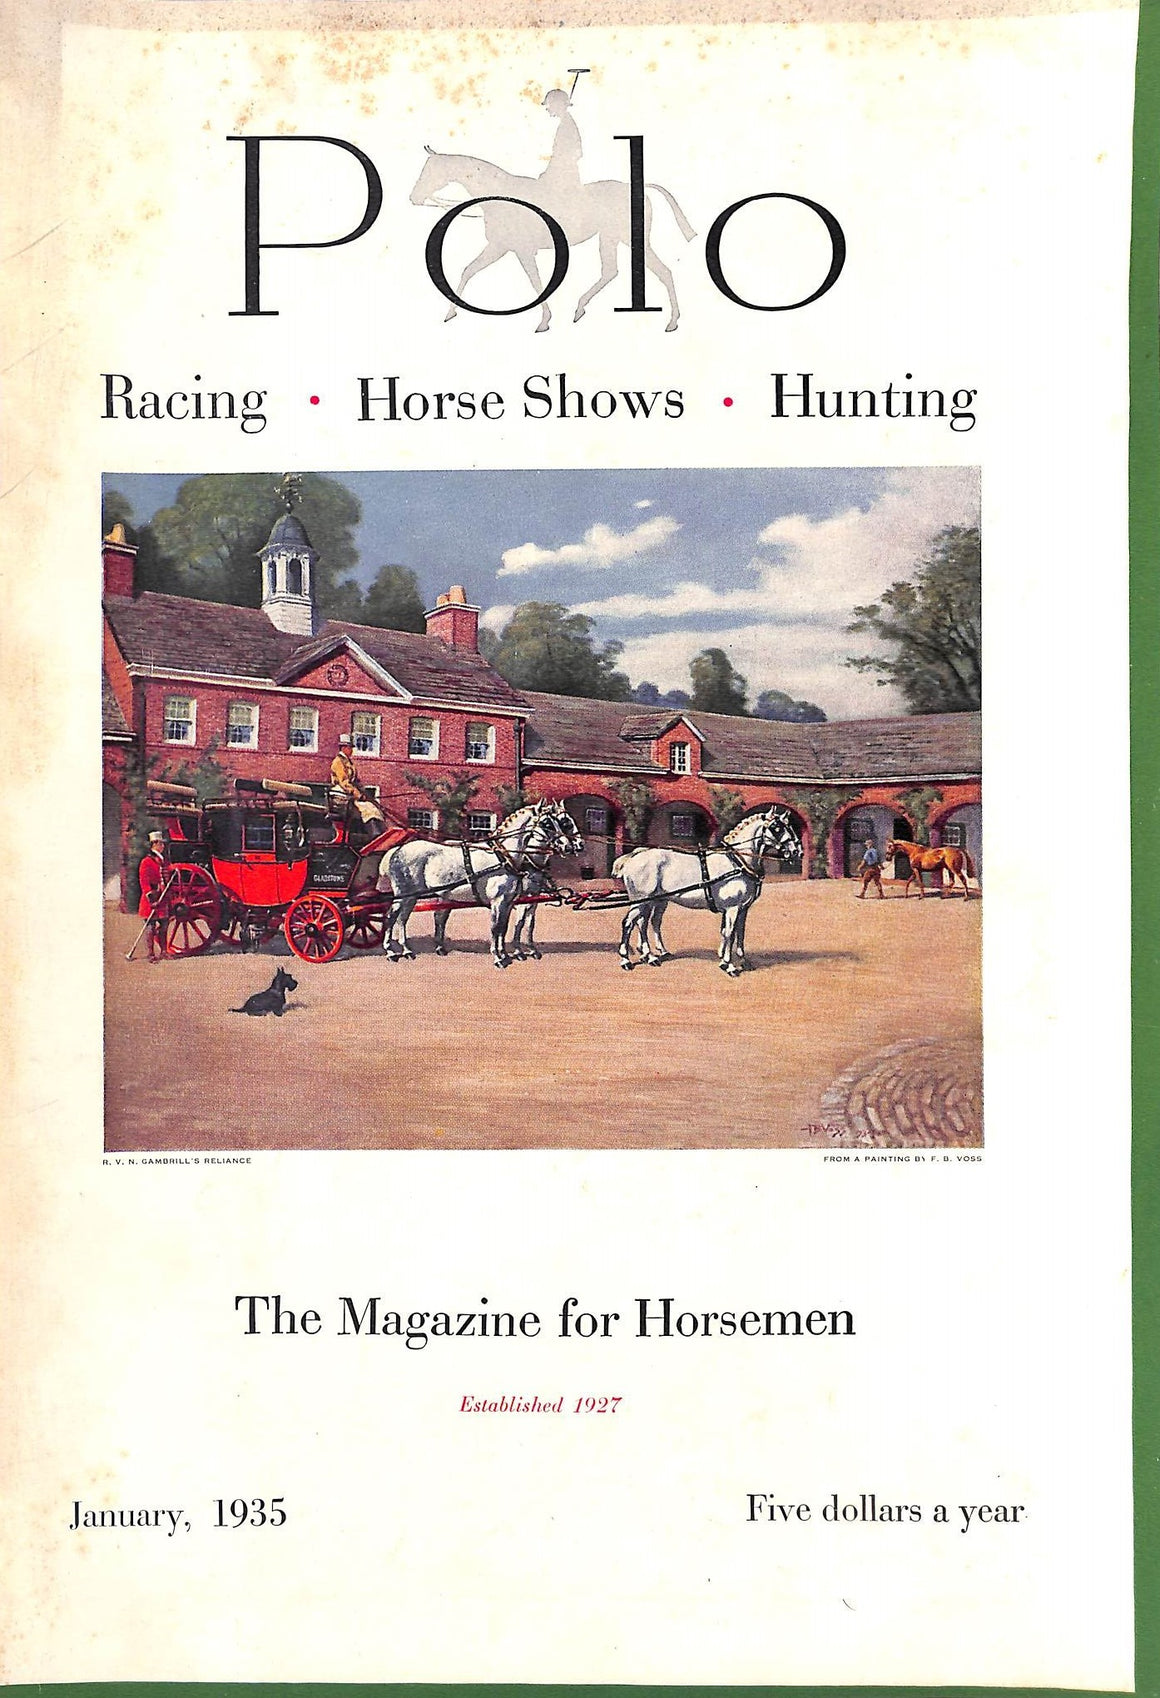 Polo Magazine Cover January, 1935 w/ F.P. Voss Cover